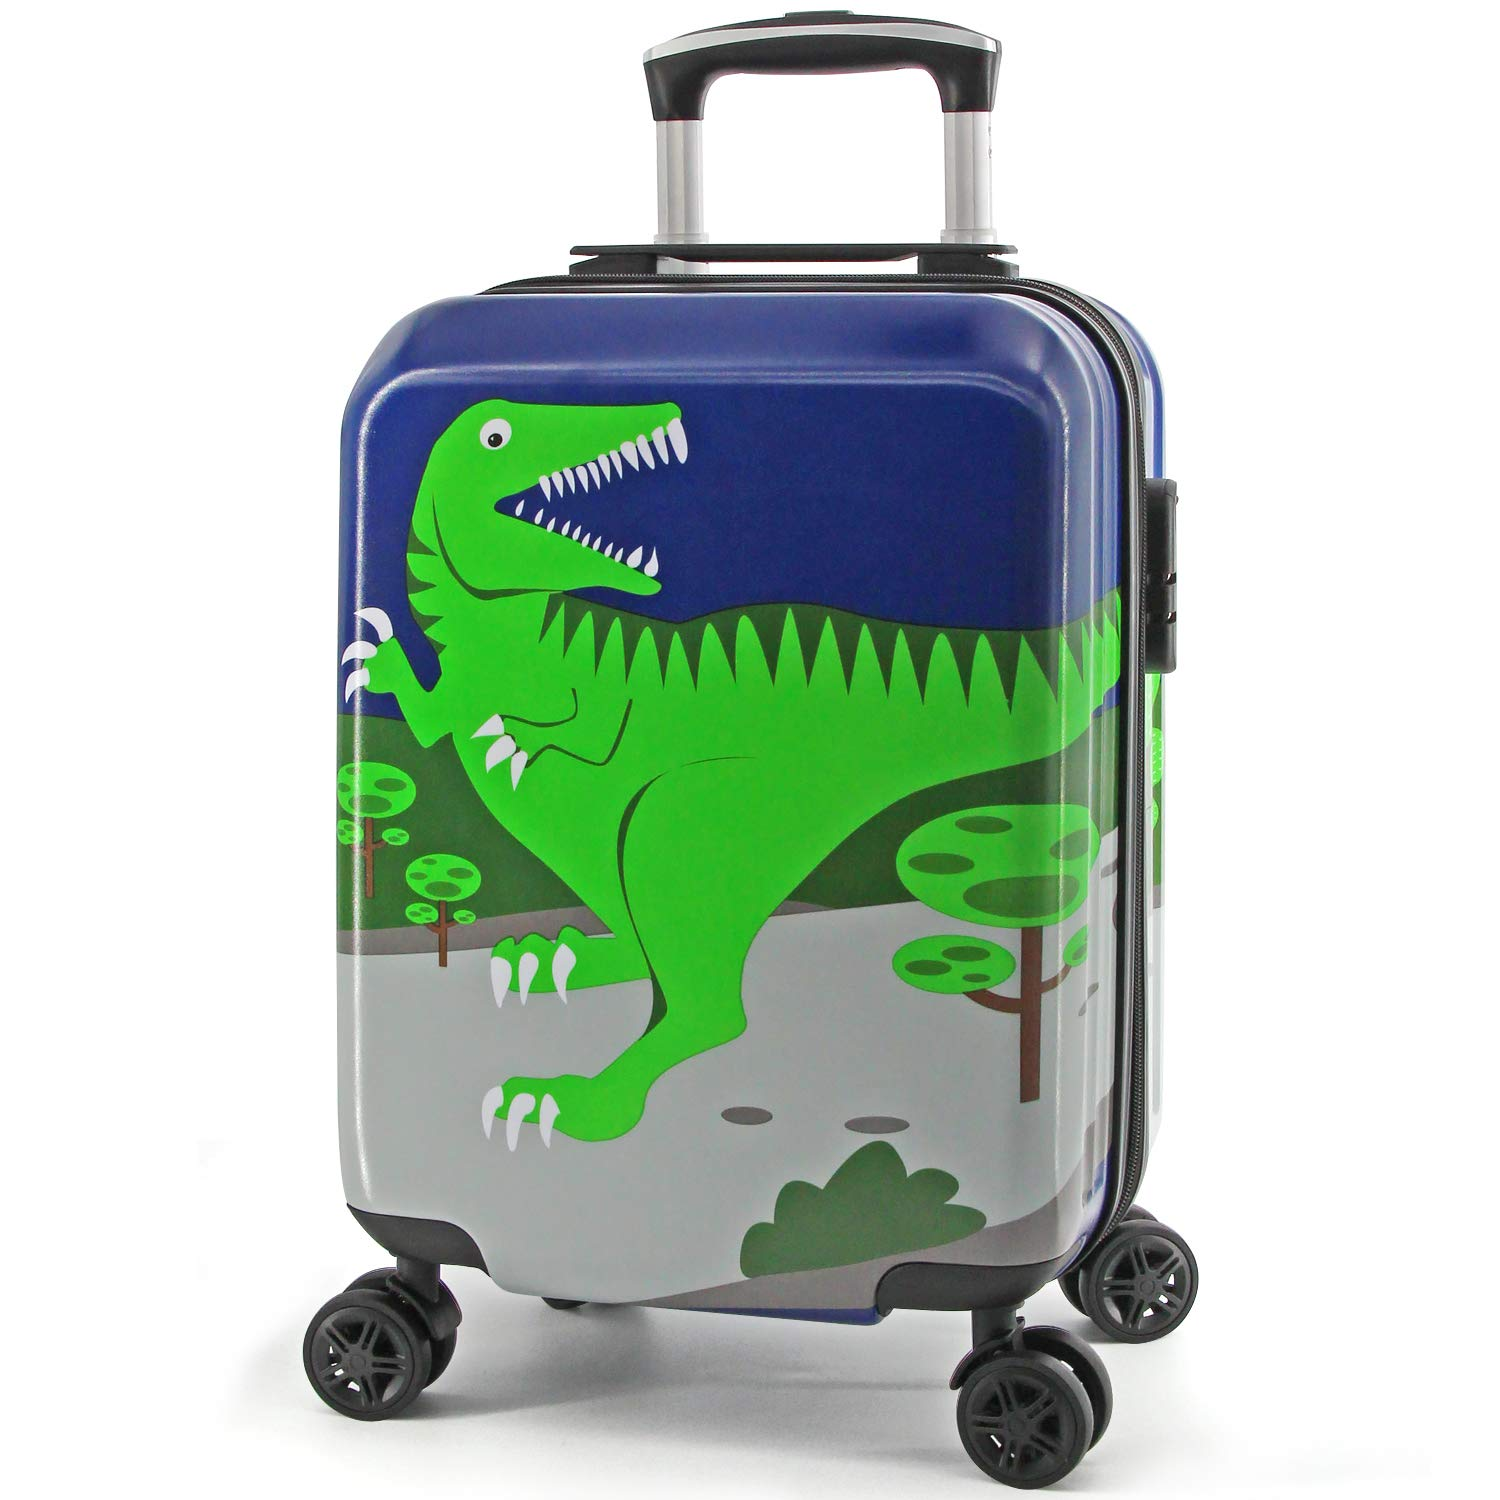 Lttxin Kids' suitcase 16 inch Polycarbonate Carry On Luggage Lovely Children travel (upgrade-dinosaur perfect printing)